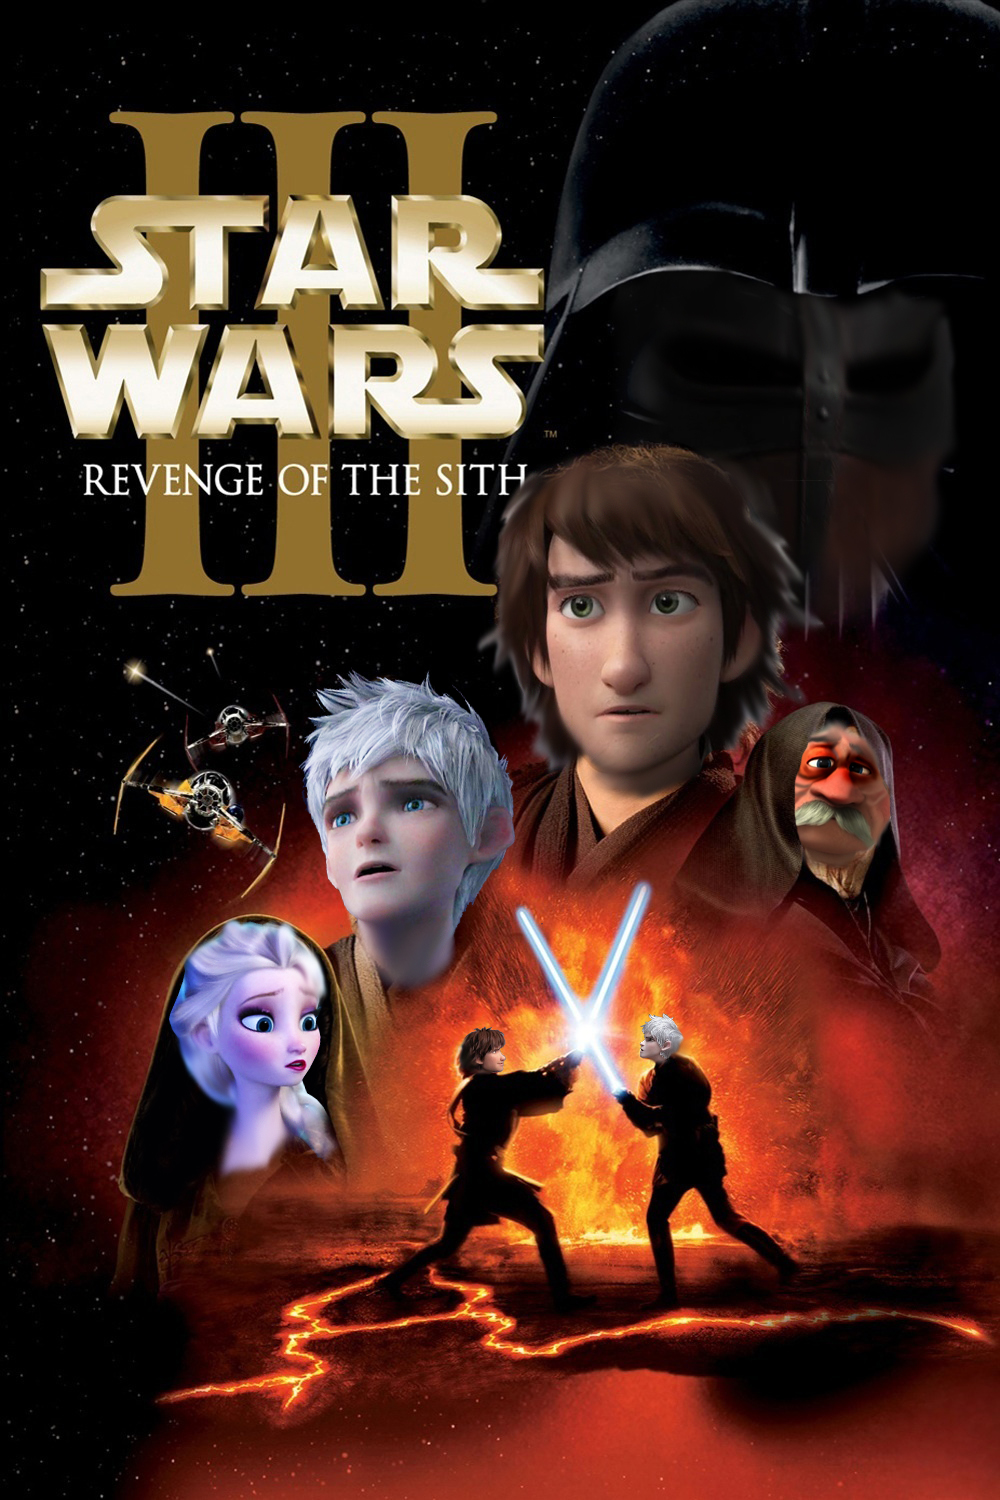 Star Wars Revenge Of The Sith Non Disney By Zoedisney22 On Deviantart